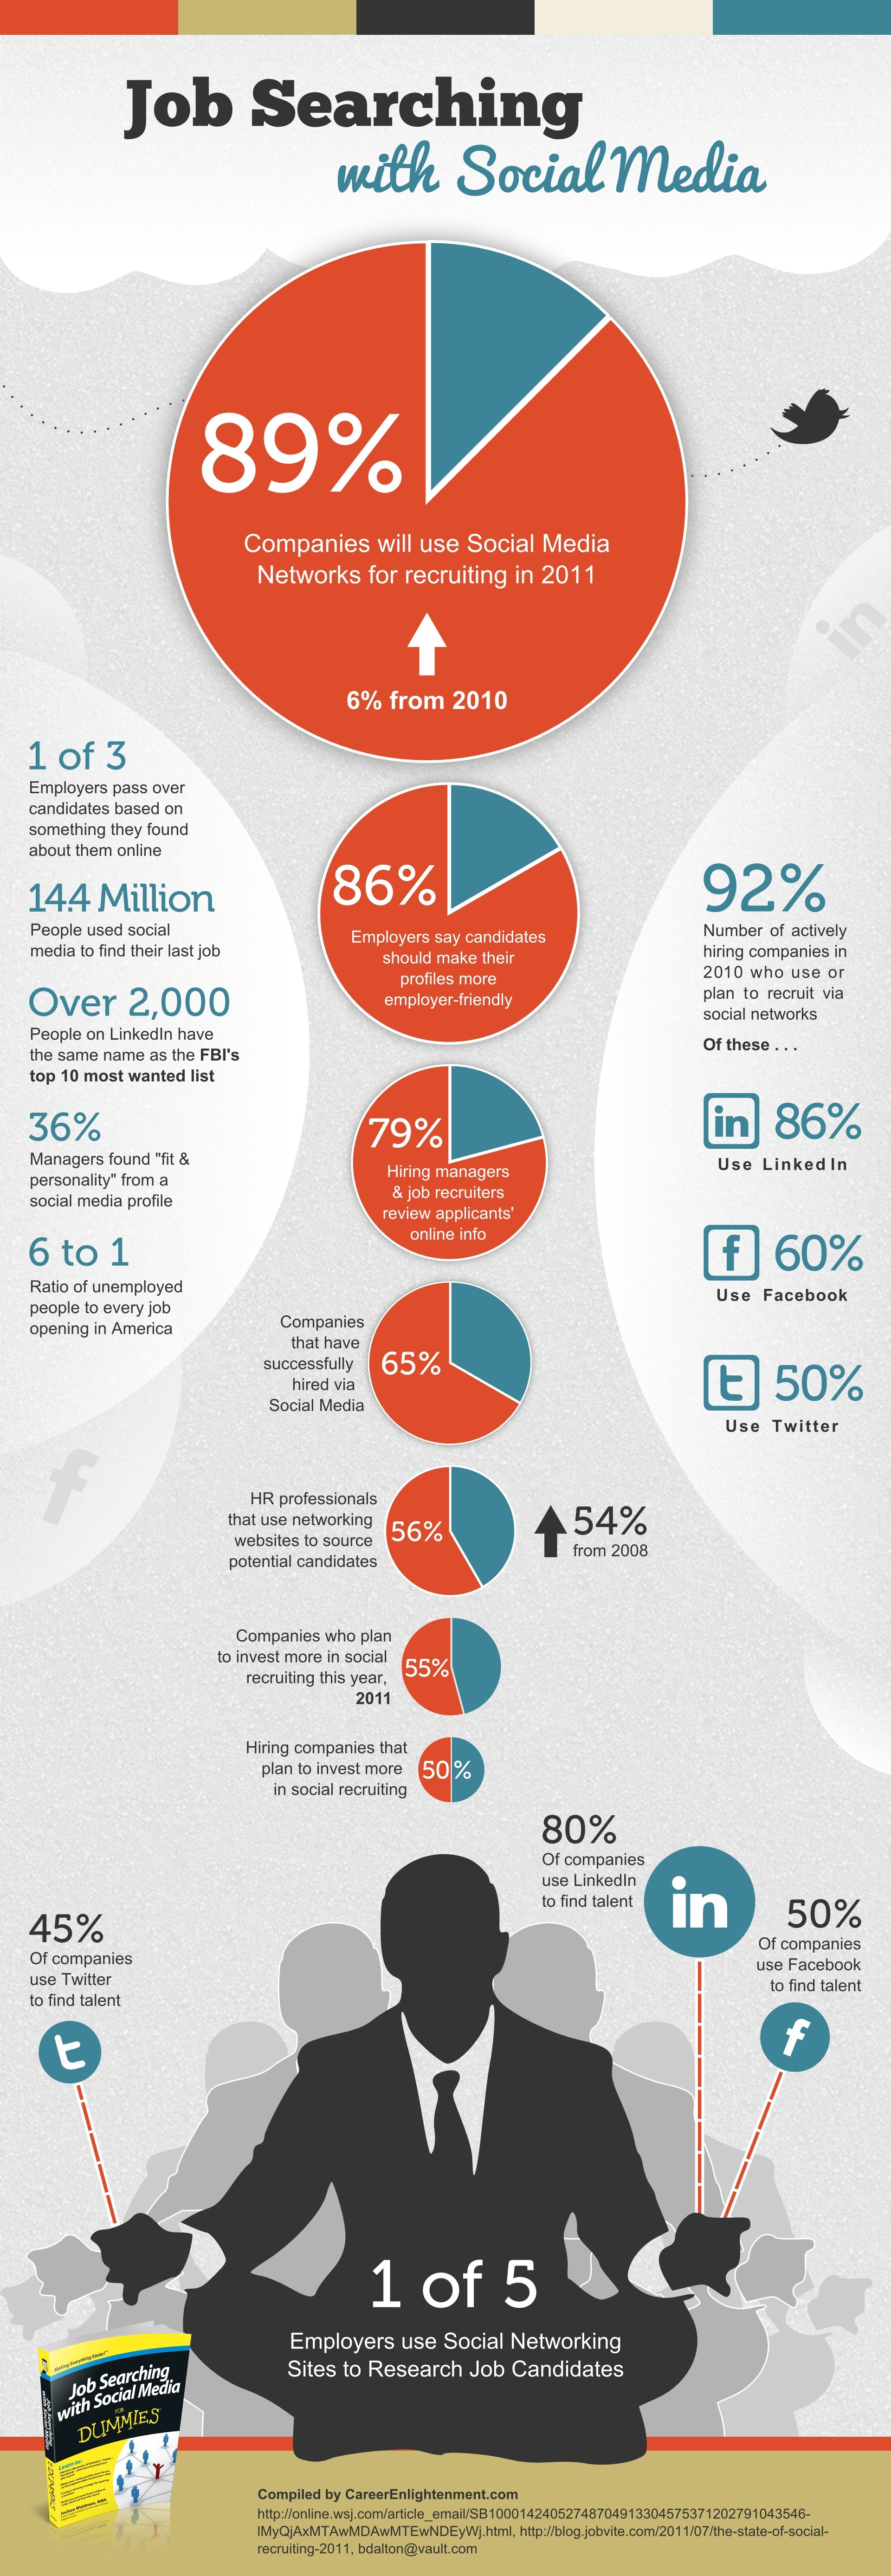 job searching with social media / infographic